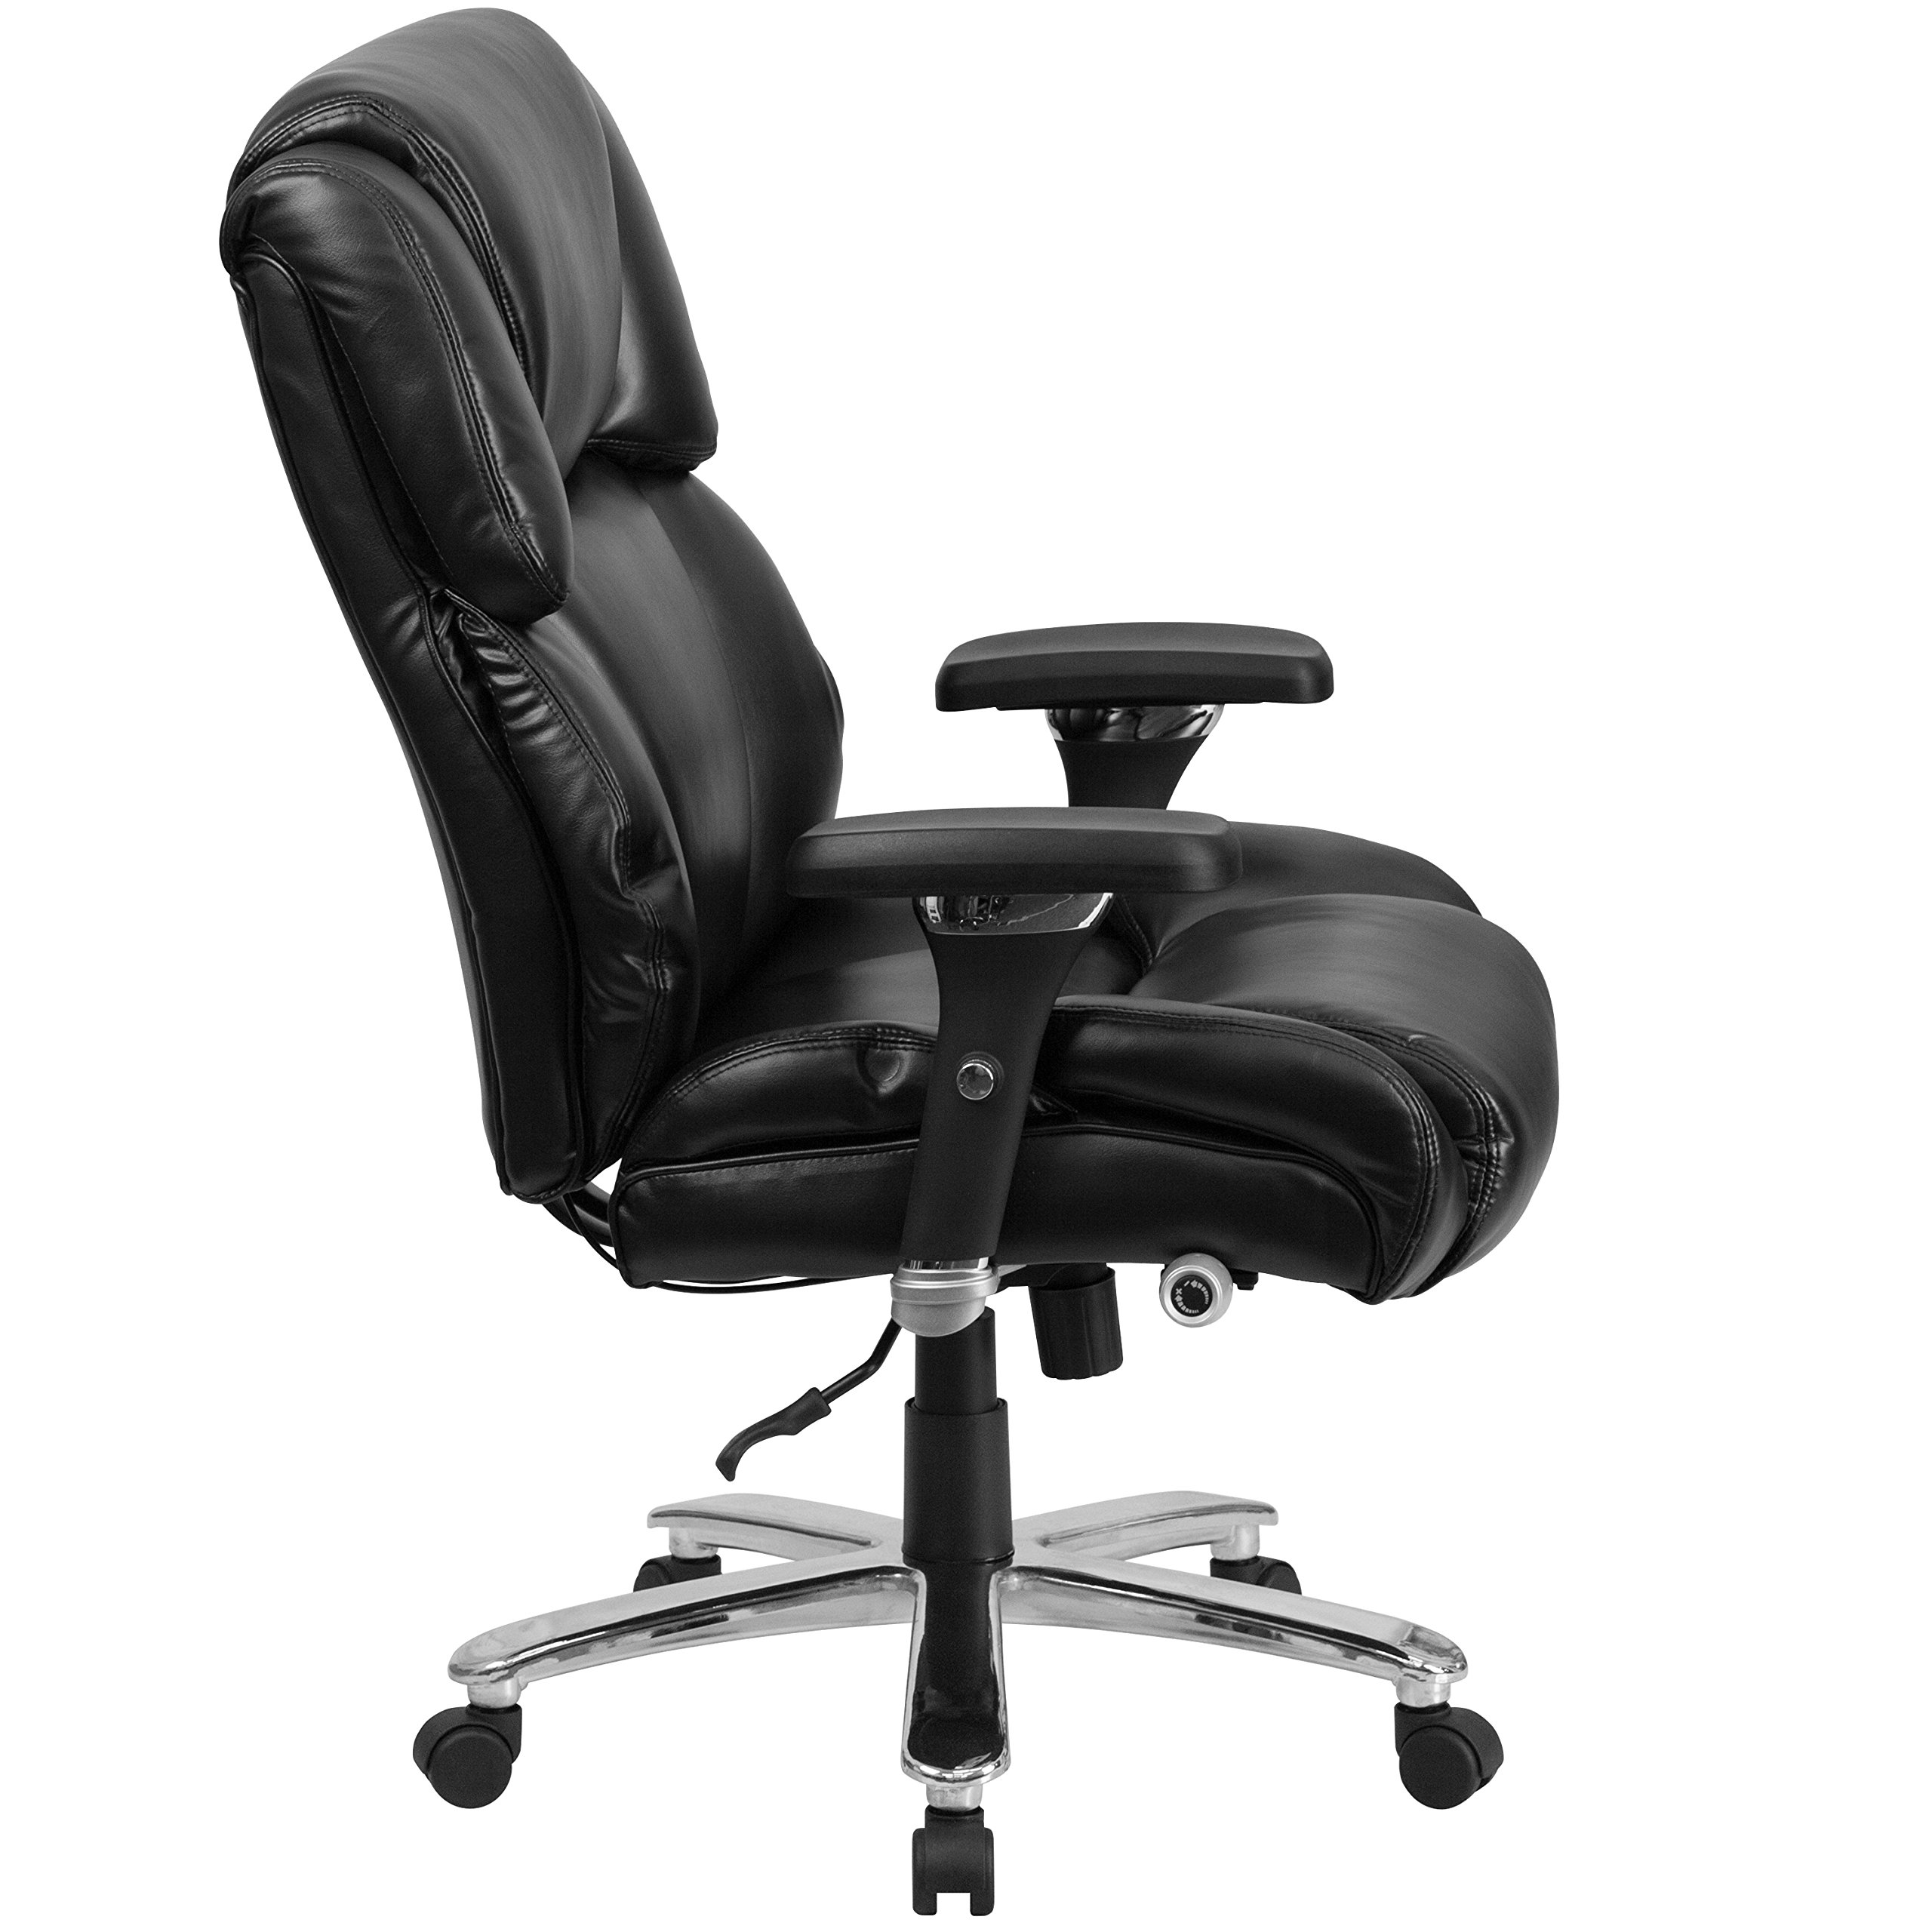 Flash Furniture HERCULES Series 24/7 Intensive Use Big & Tall 400 lb. Rated Black Leather Executive Swivel Chair with Lumbar Knob by Flash Furniture (Image #2)